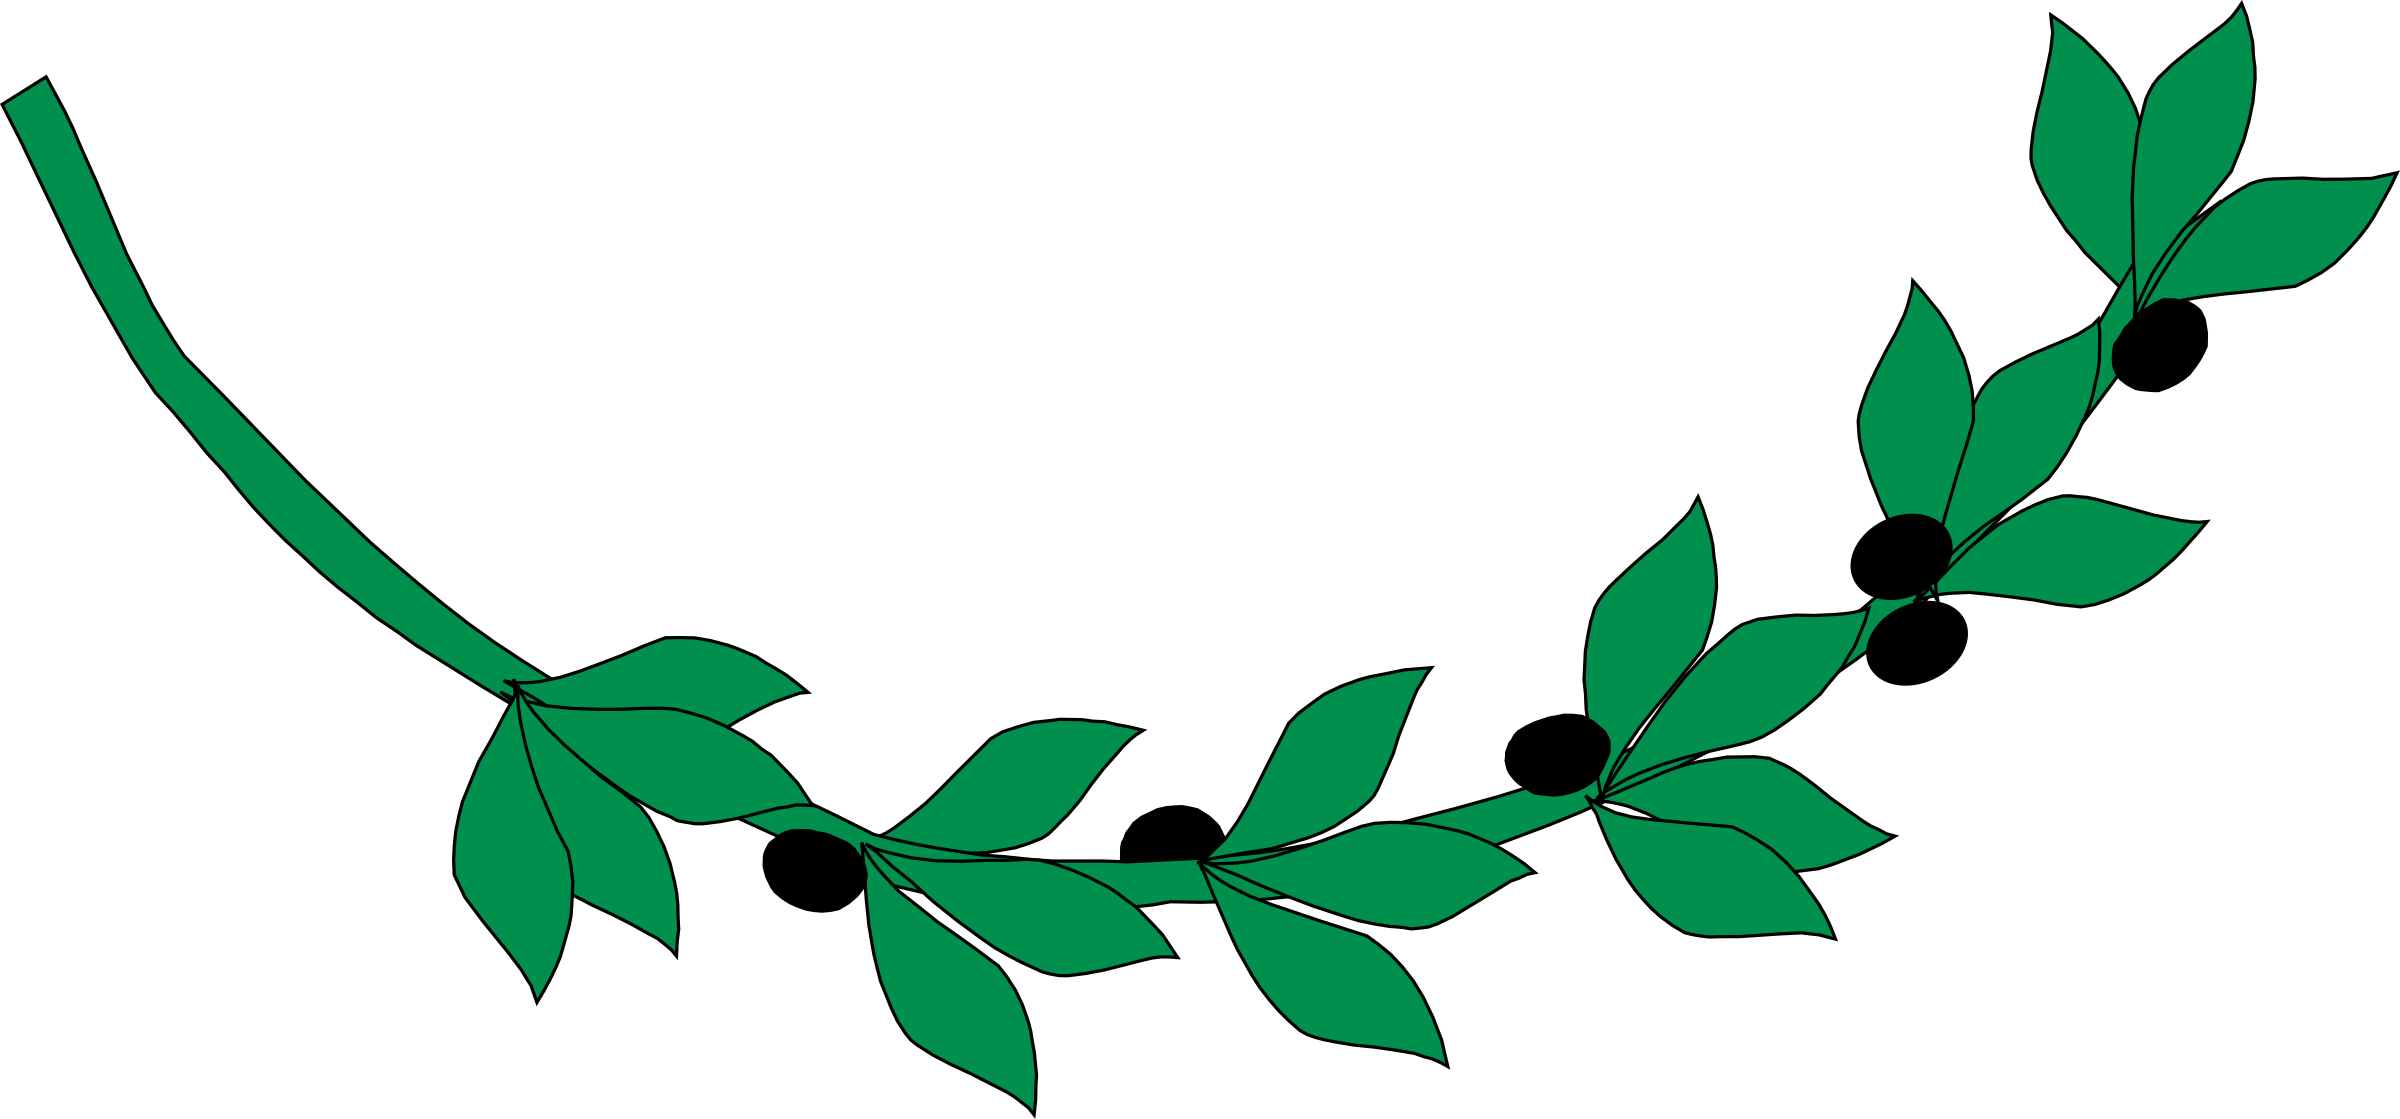 Greenery vector watercolor. Olive branch icons png